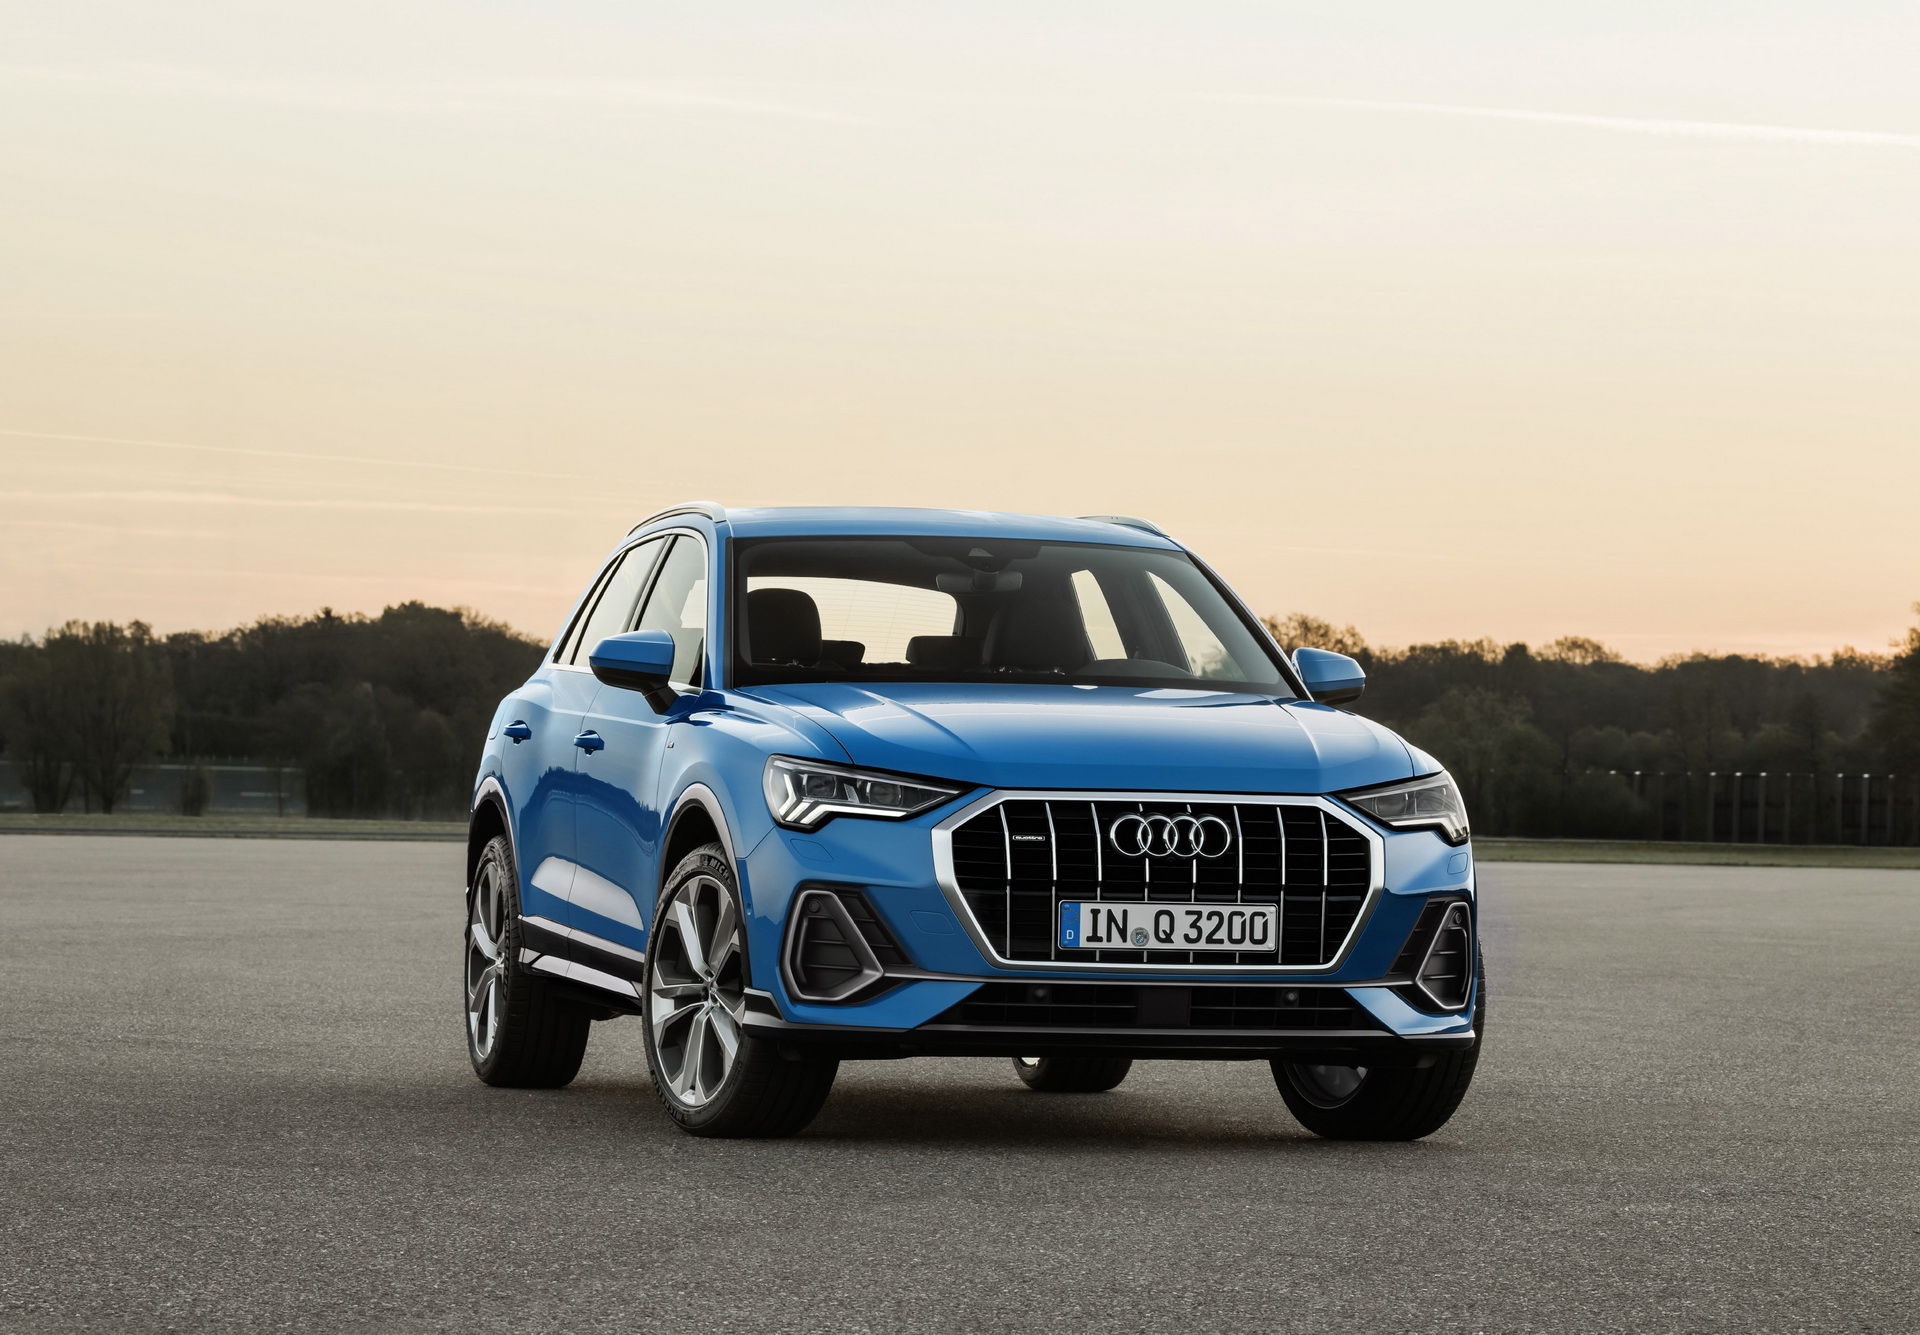 New 2019 Audi Q3 Starts From 38 900 In Canada Will U S Price Be Similar Carmojo The Entry Level 2019 Audi Q3 Comes Standard With All Audi Q3 Audi Suv